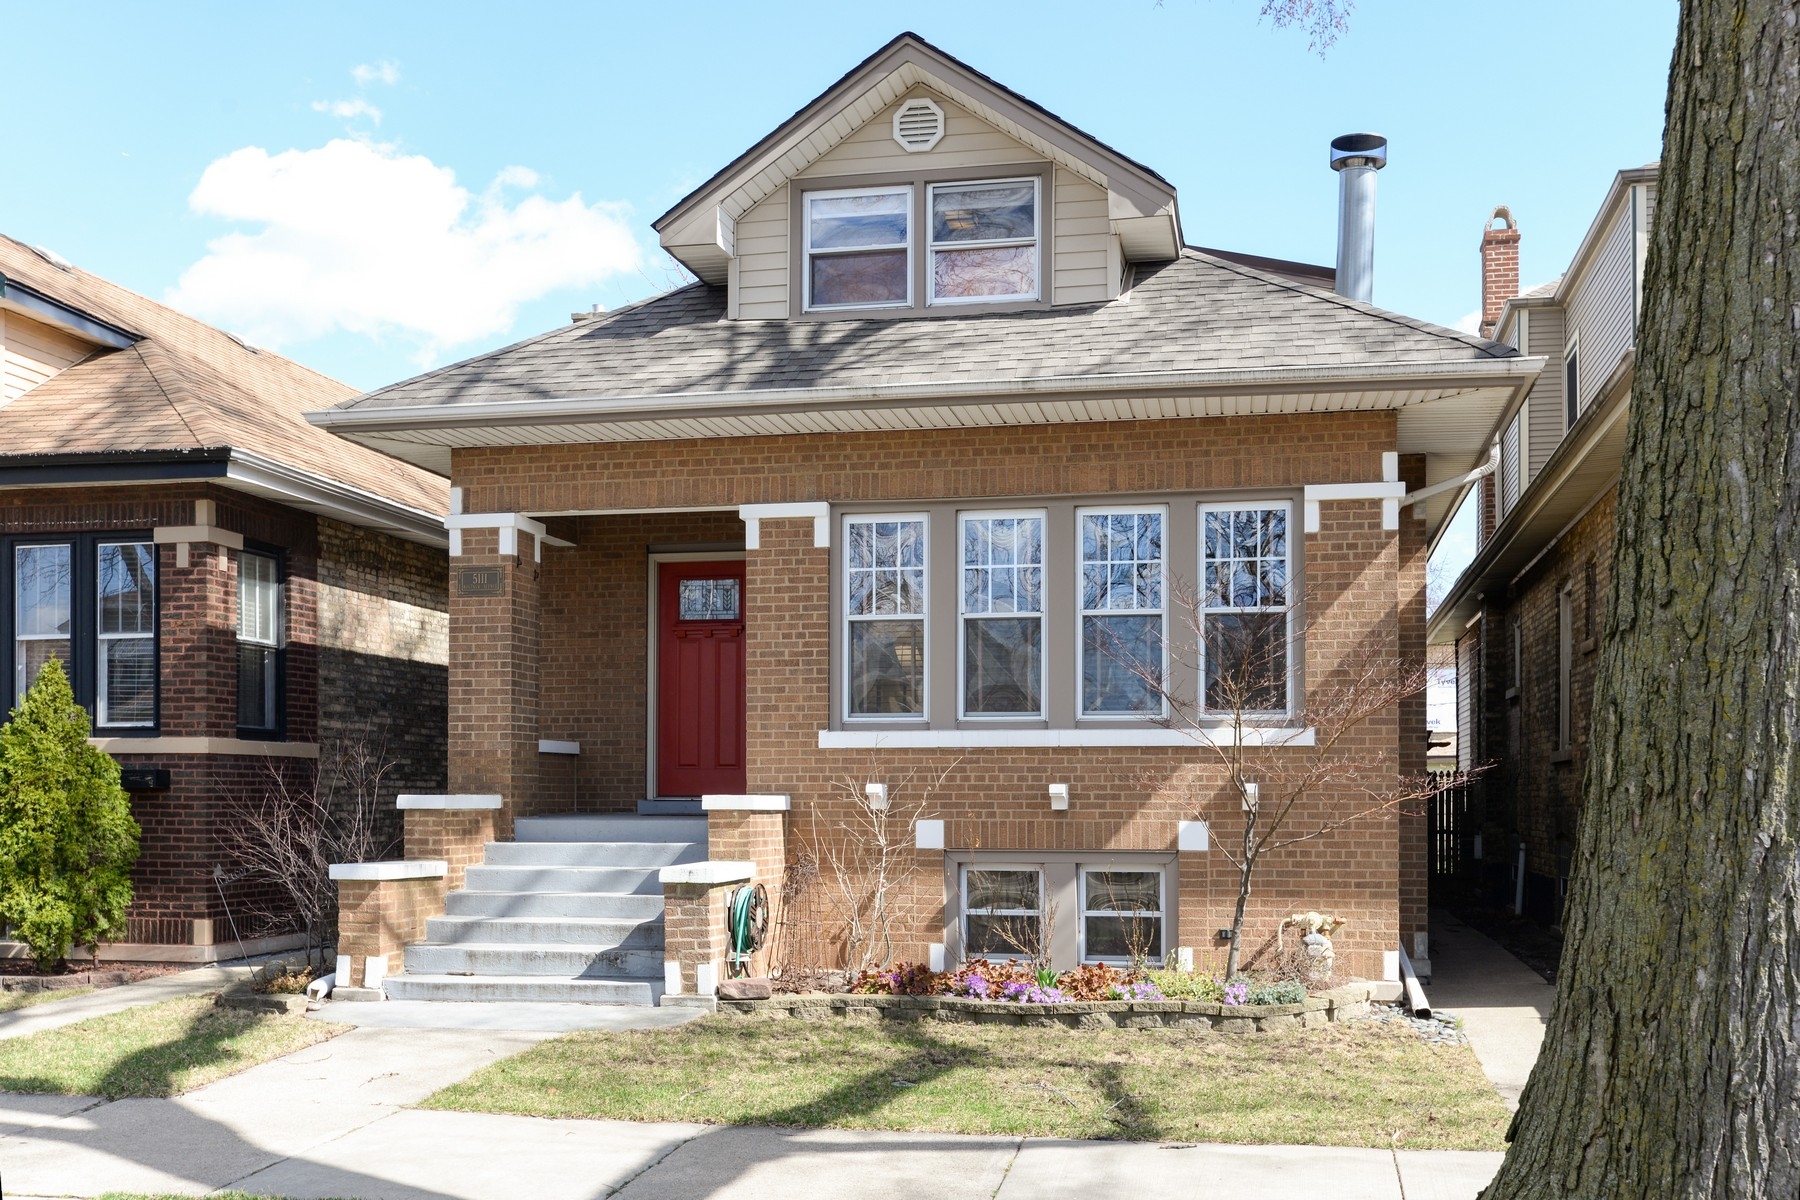 Single Family Home for Sale at Nice Brick Bungalow 5111 North Kostner Avenue Chicago, Illinois, 60630 United States